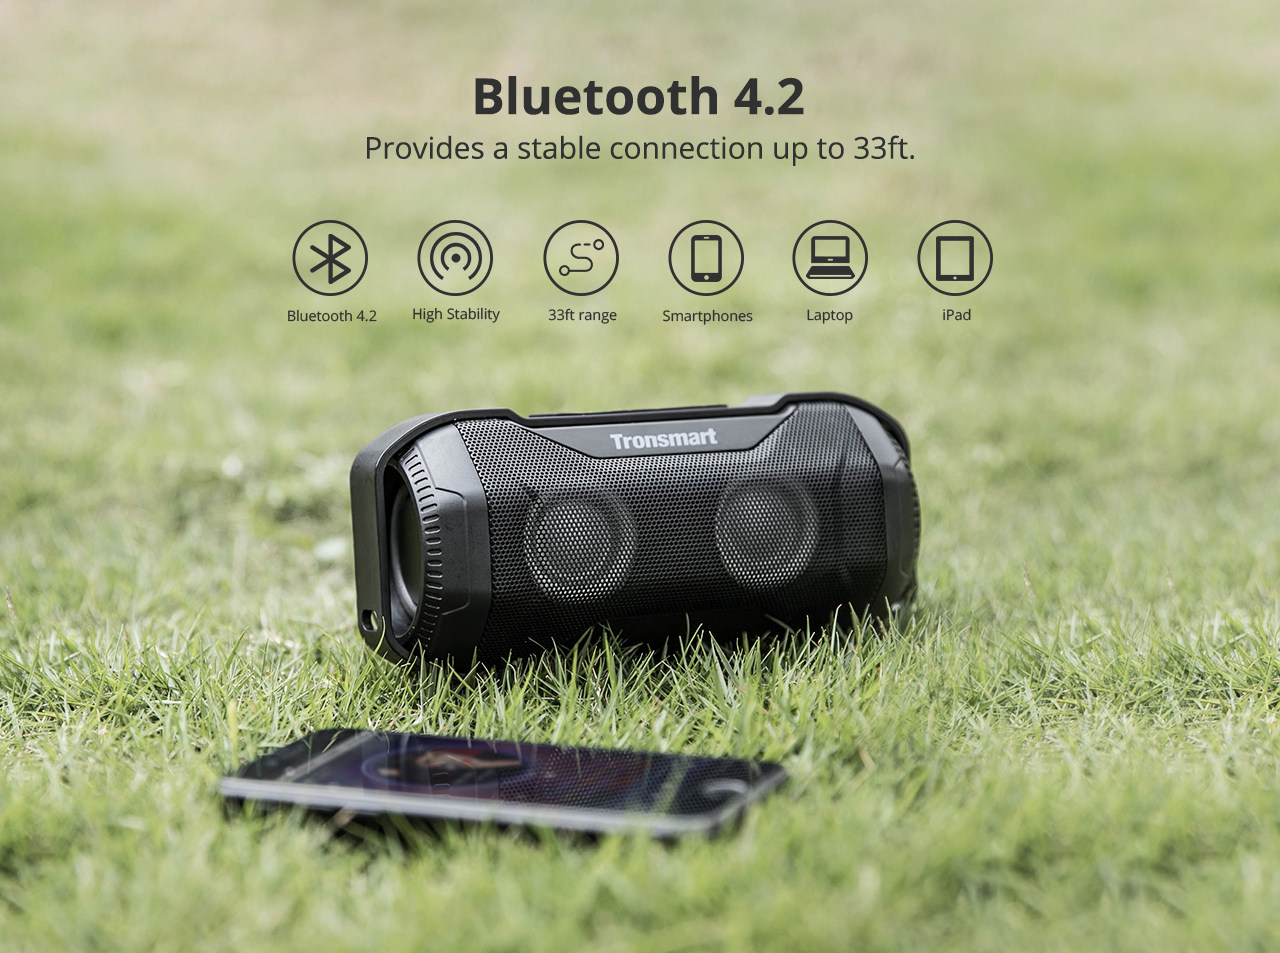 Tronsmart Element Blaze Bluetooth zvučnik IPX6 - image Tronsmart-Element-Blaze-10W-Bluetooth-Speaker-20190319115108901 on https://smartmall.hr